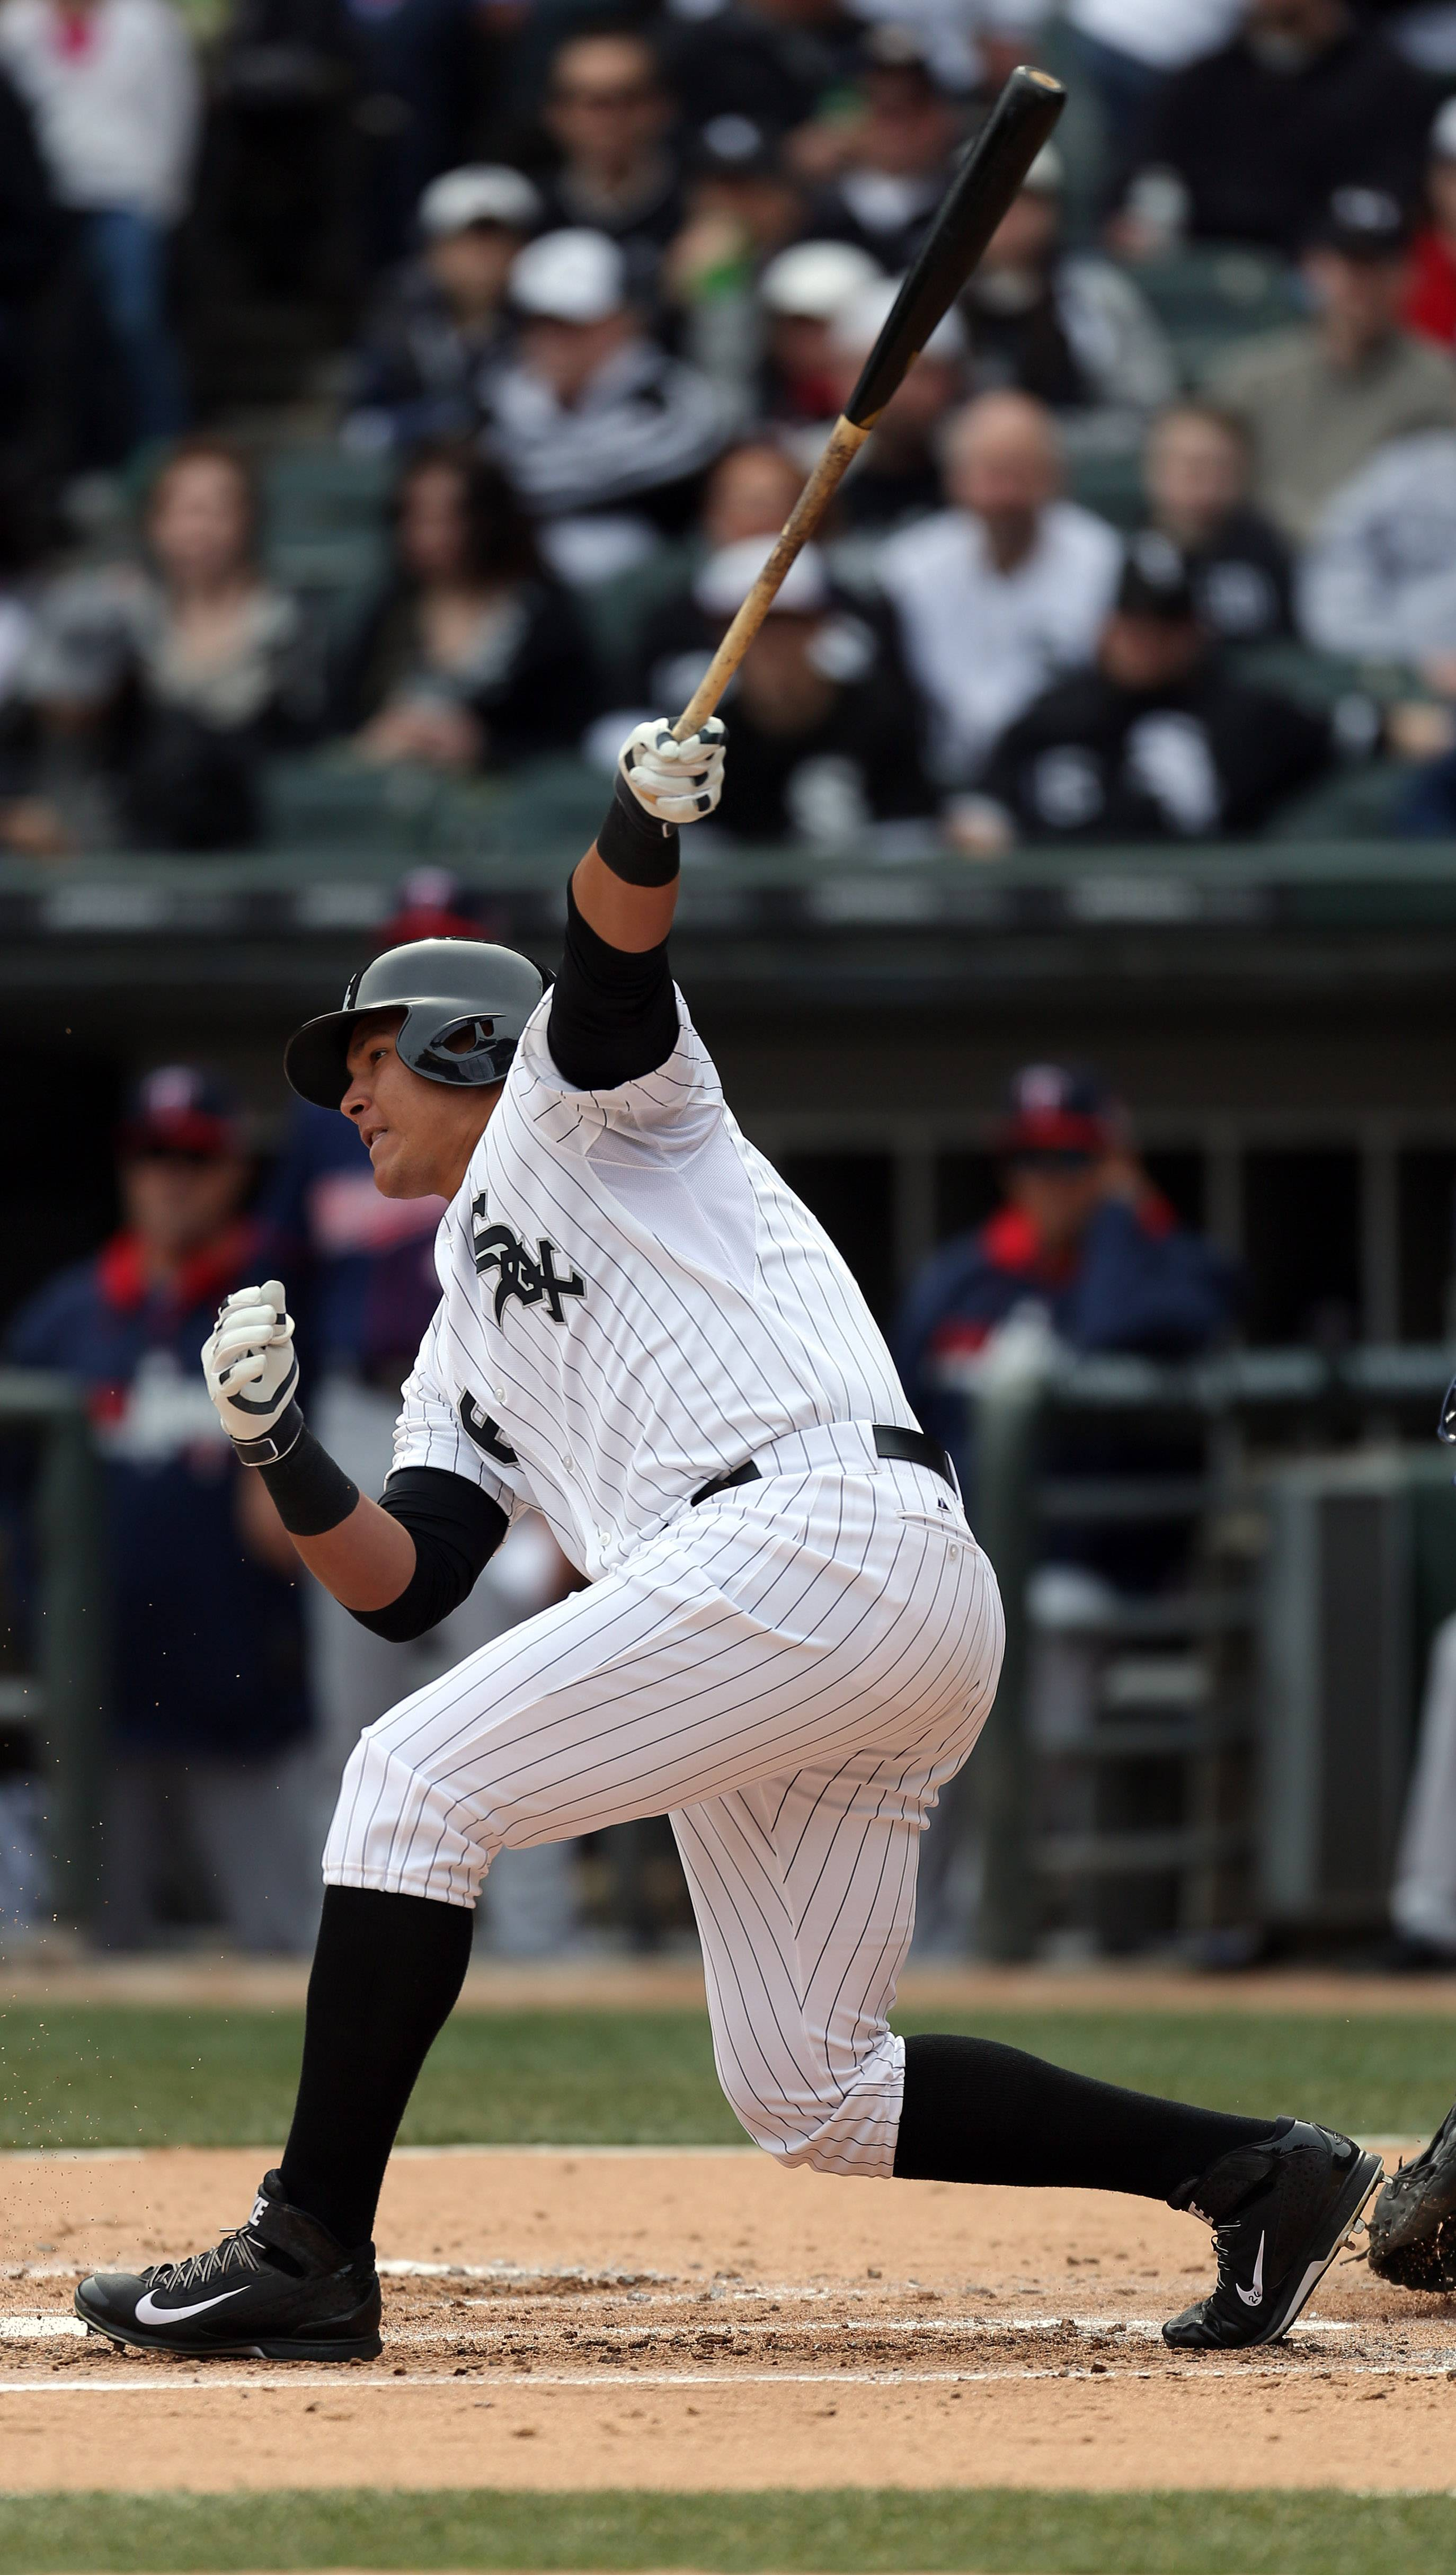 Chicago White Sox right fielder Avisail Garcia connects with the ball during the White Sox home opener against the Minnesota twins Monday at U.S. Cellular Field.